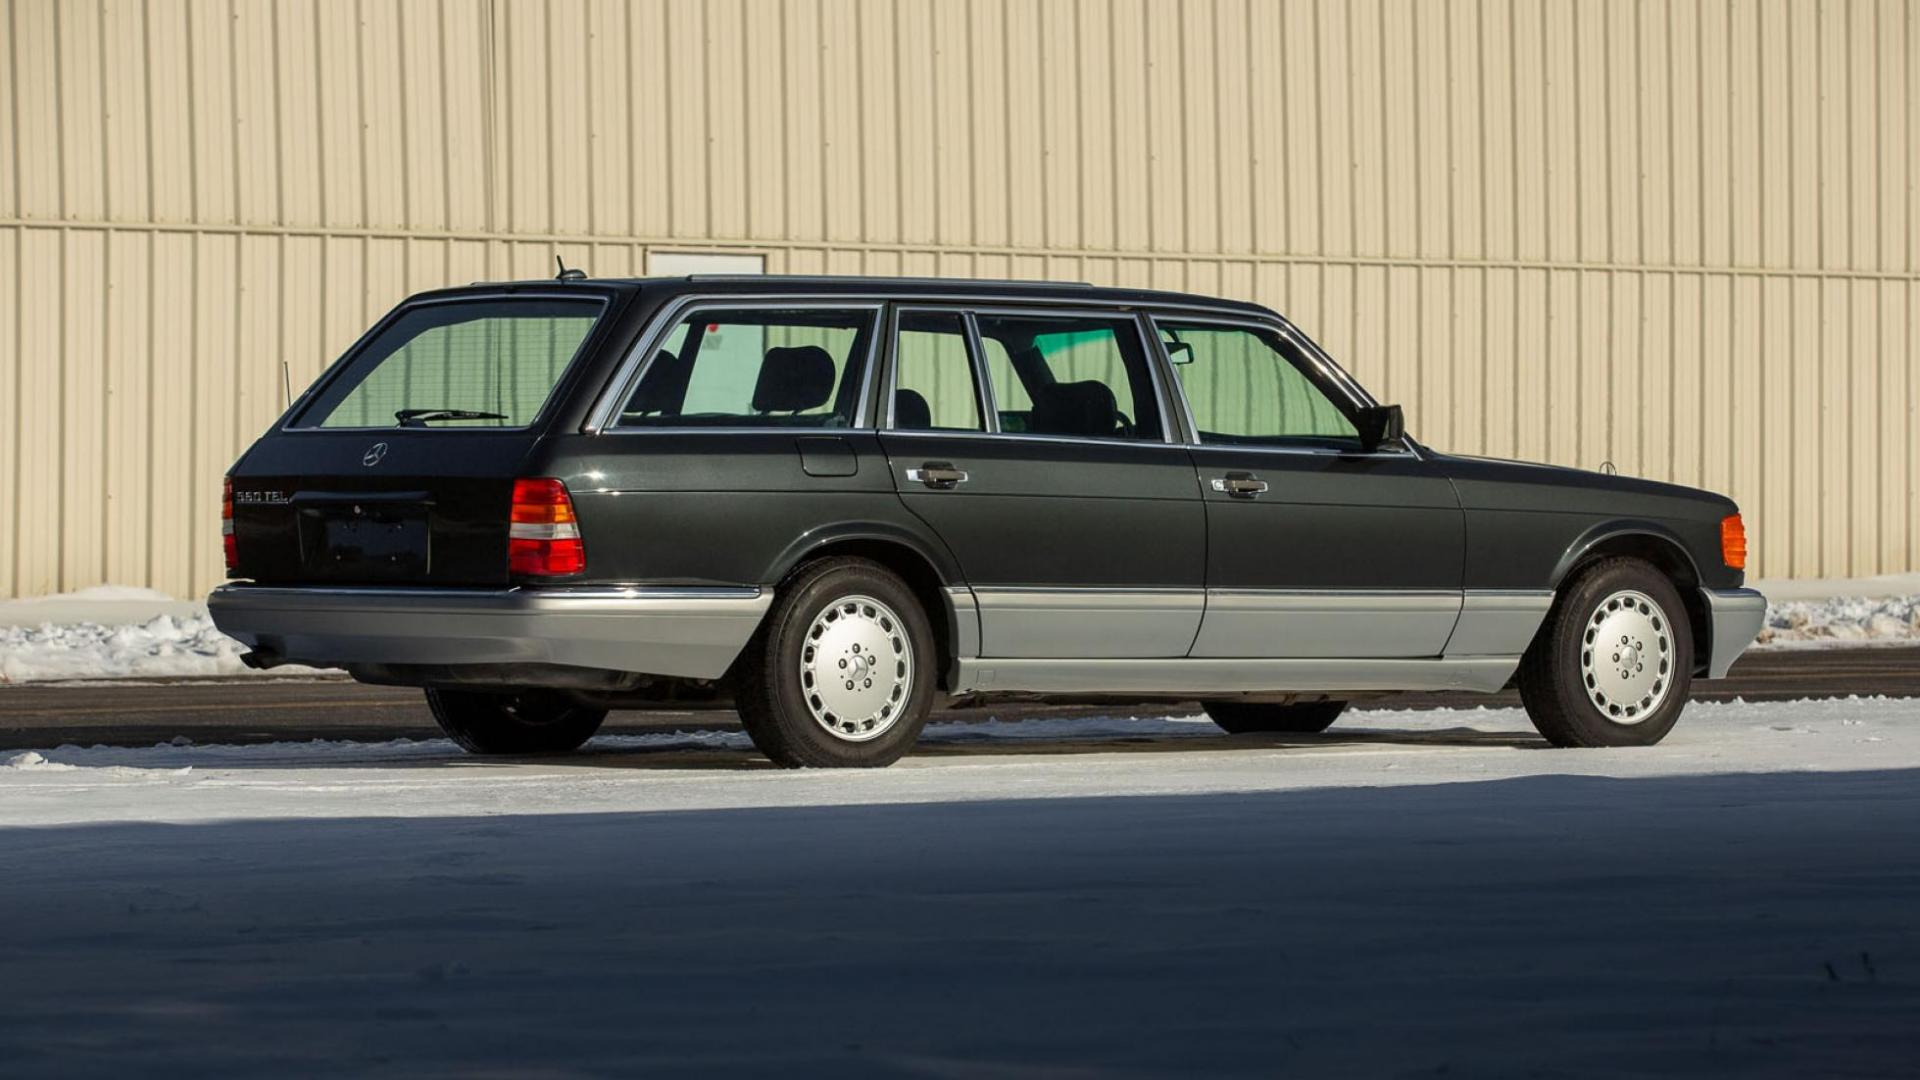 Mercedes S-klasse Estate 560 TEL